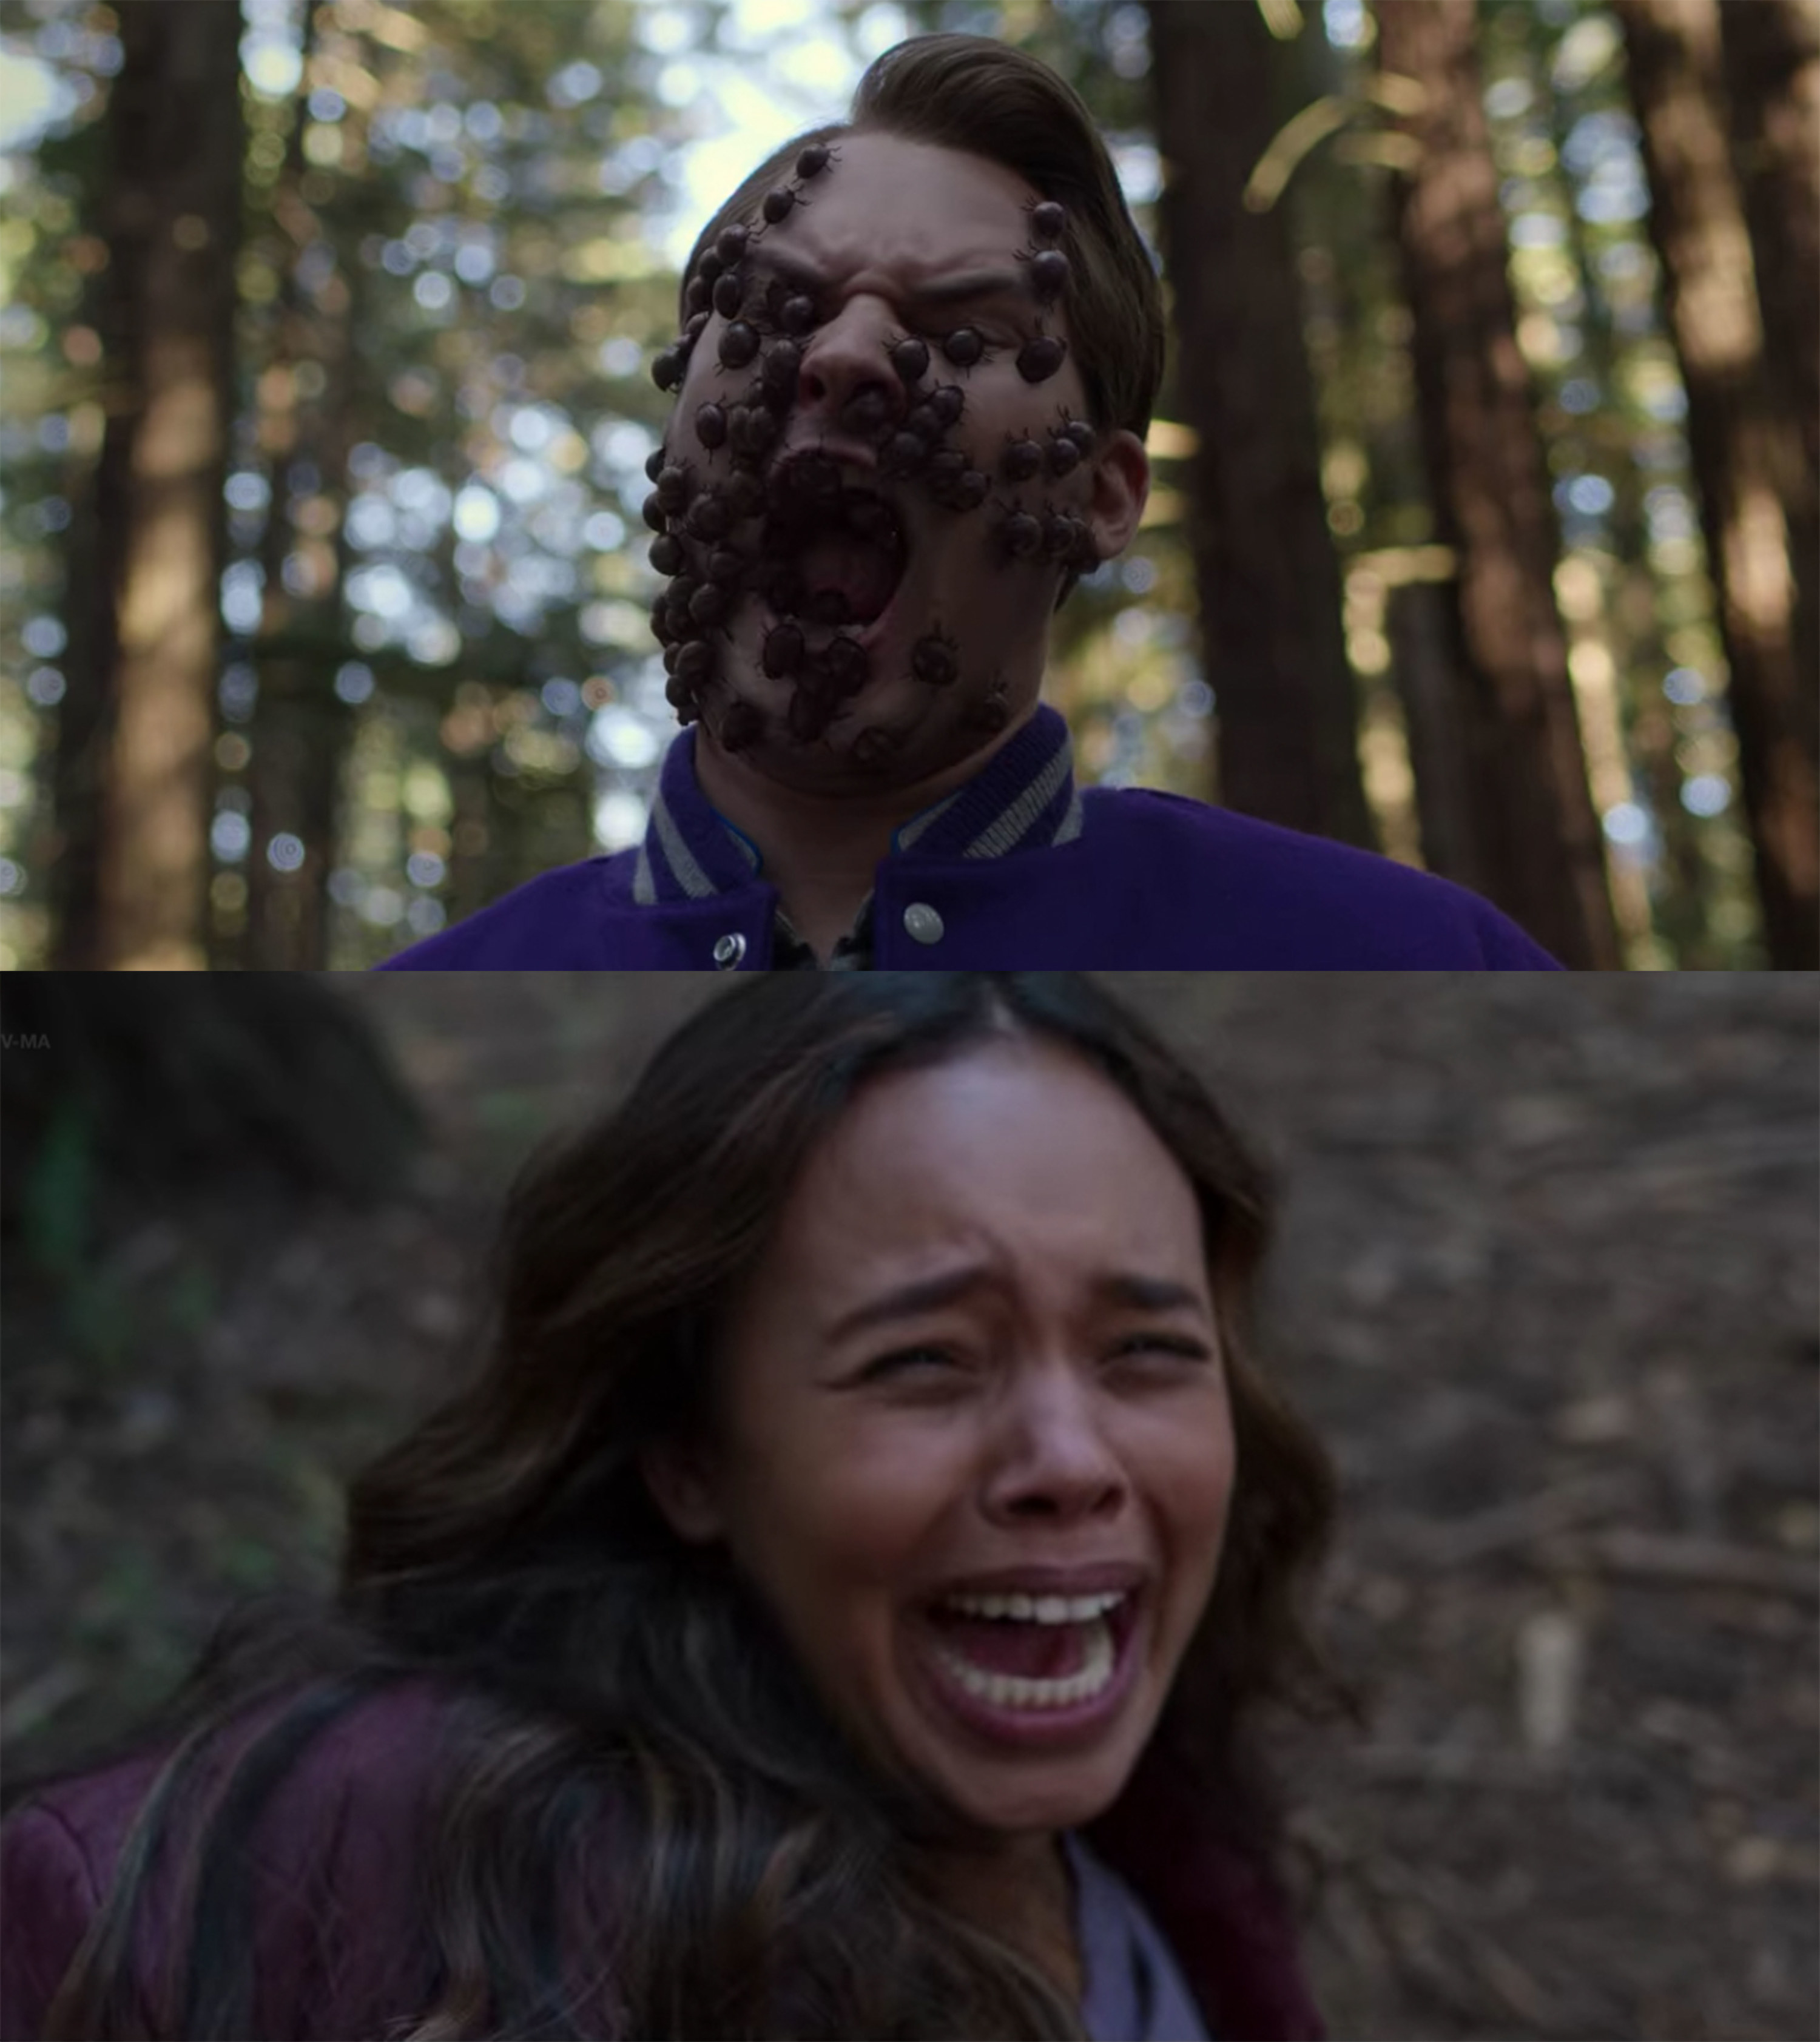 Bryce's face gets consumed by beetles, Jessica screams